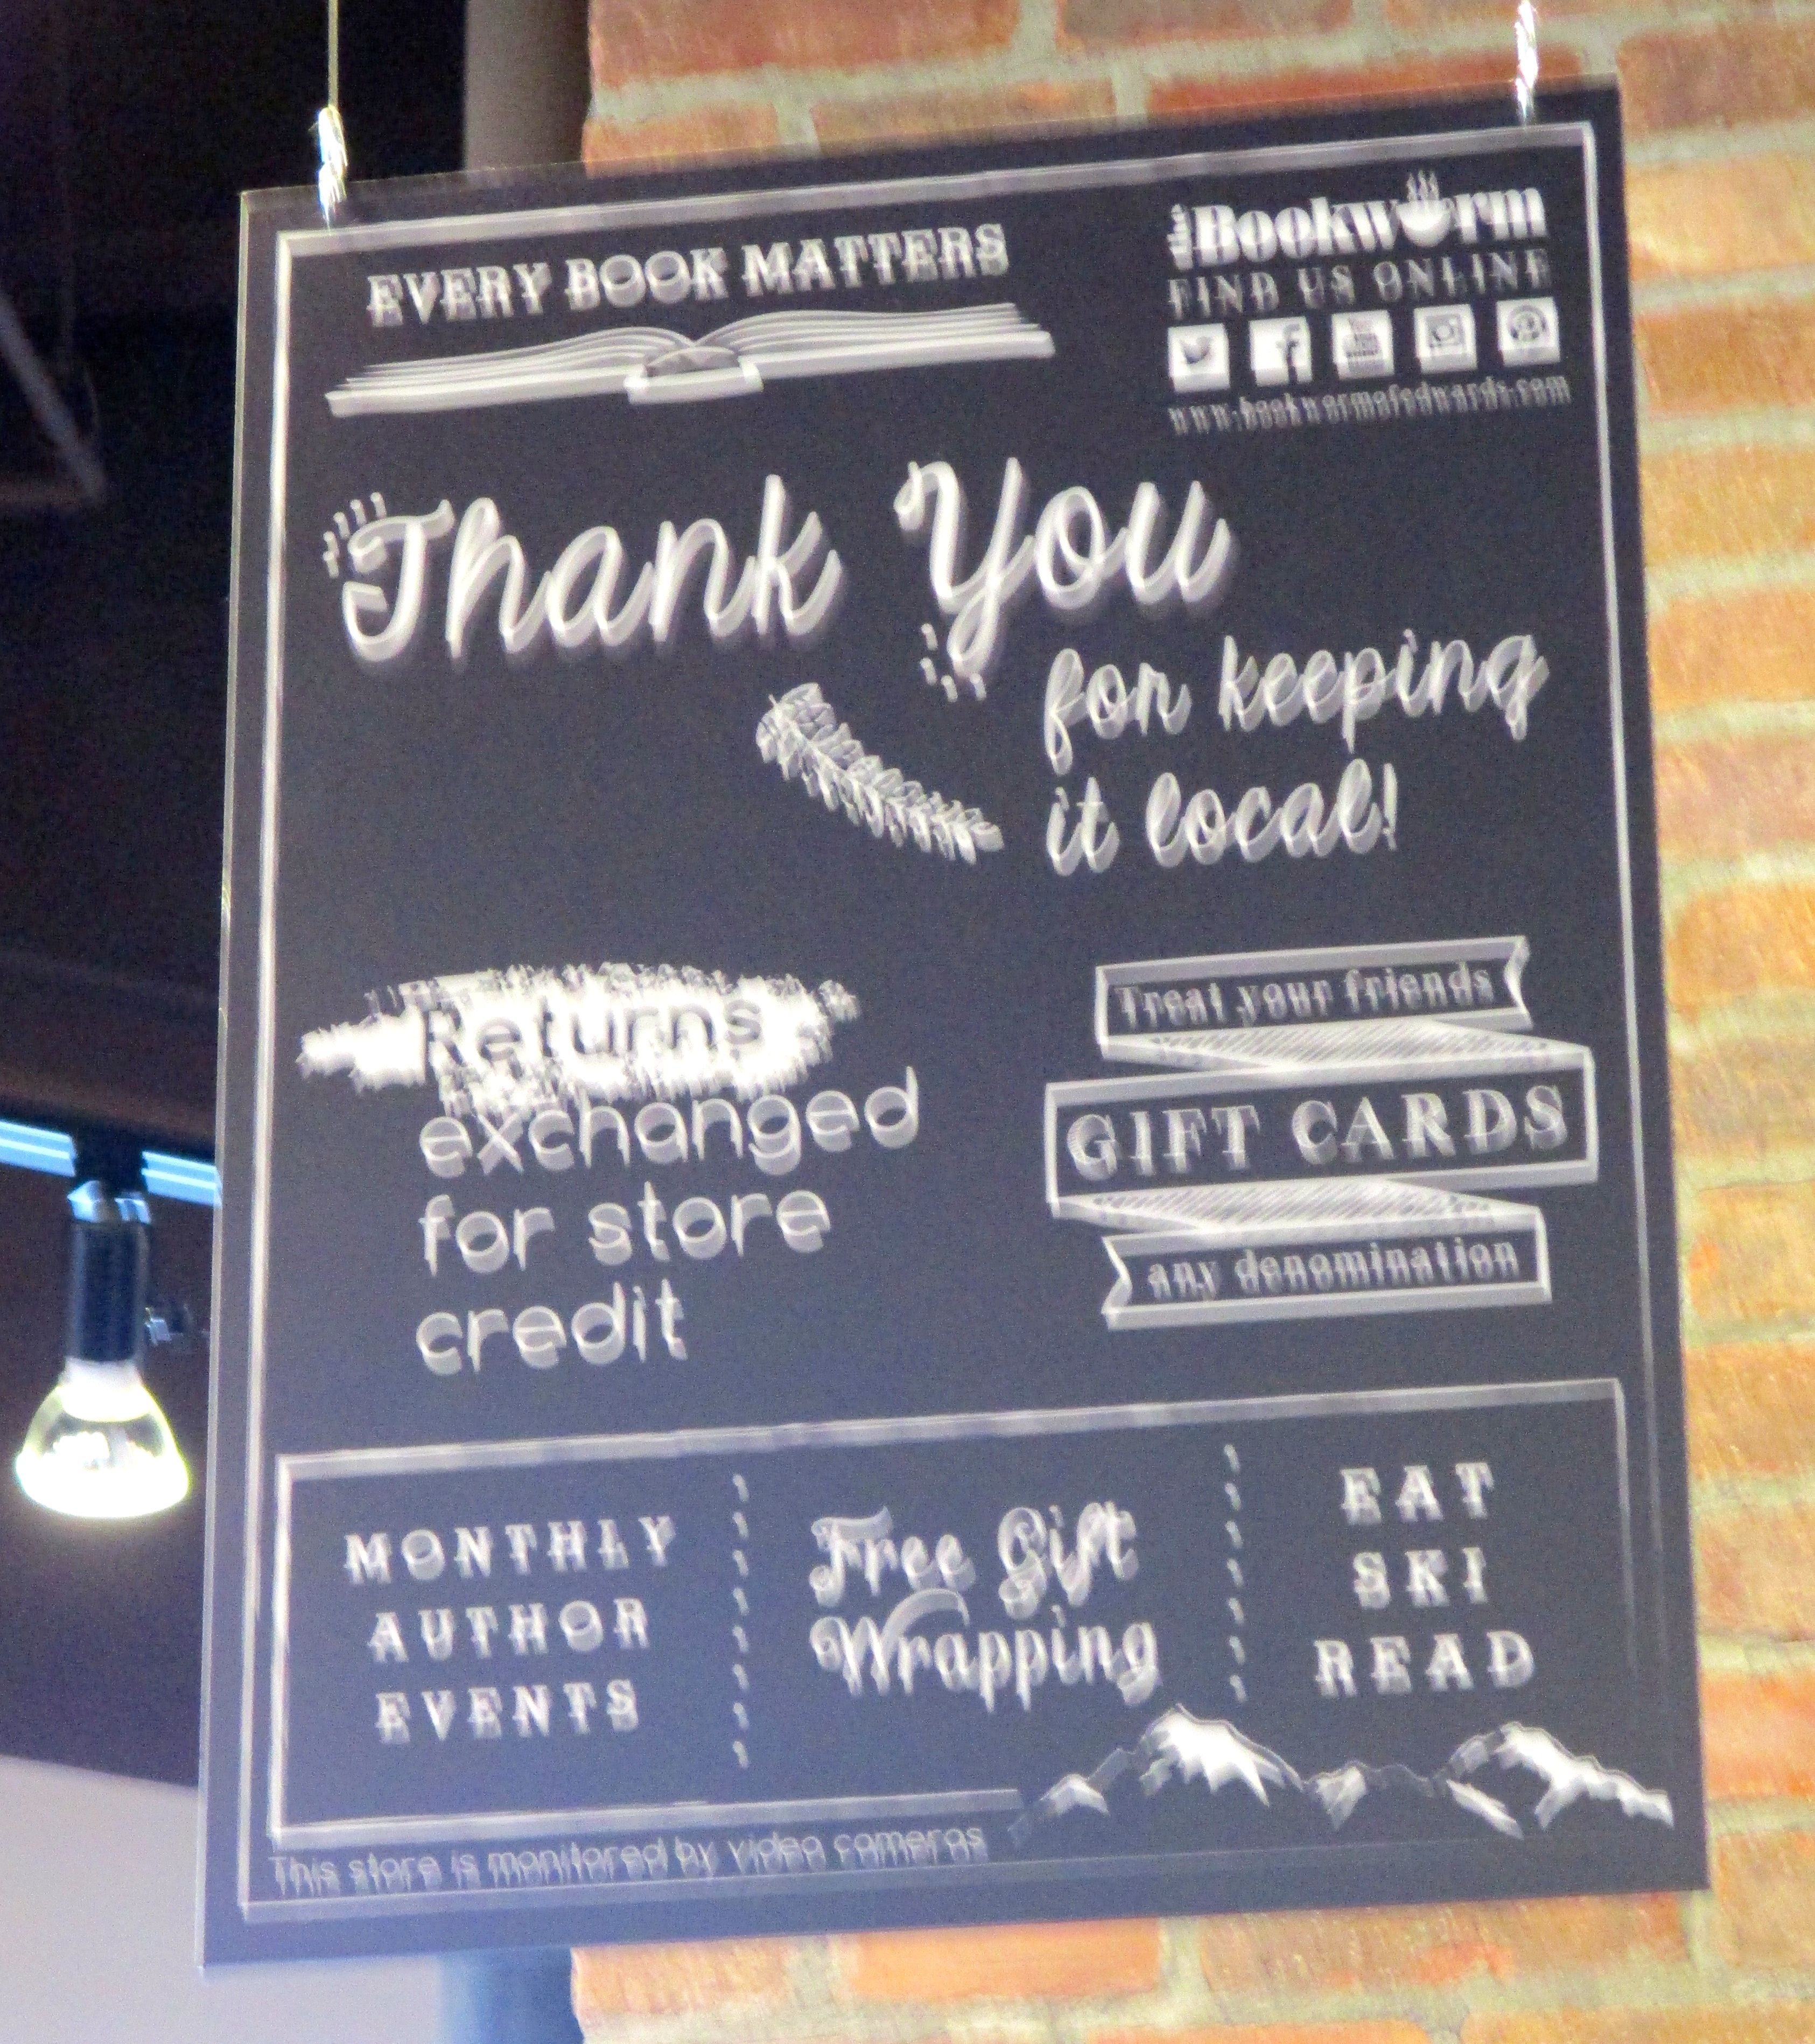 Gratitude is the primary message for customers ... a reminder that shopping local matters.